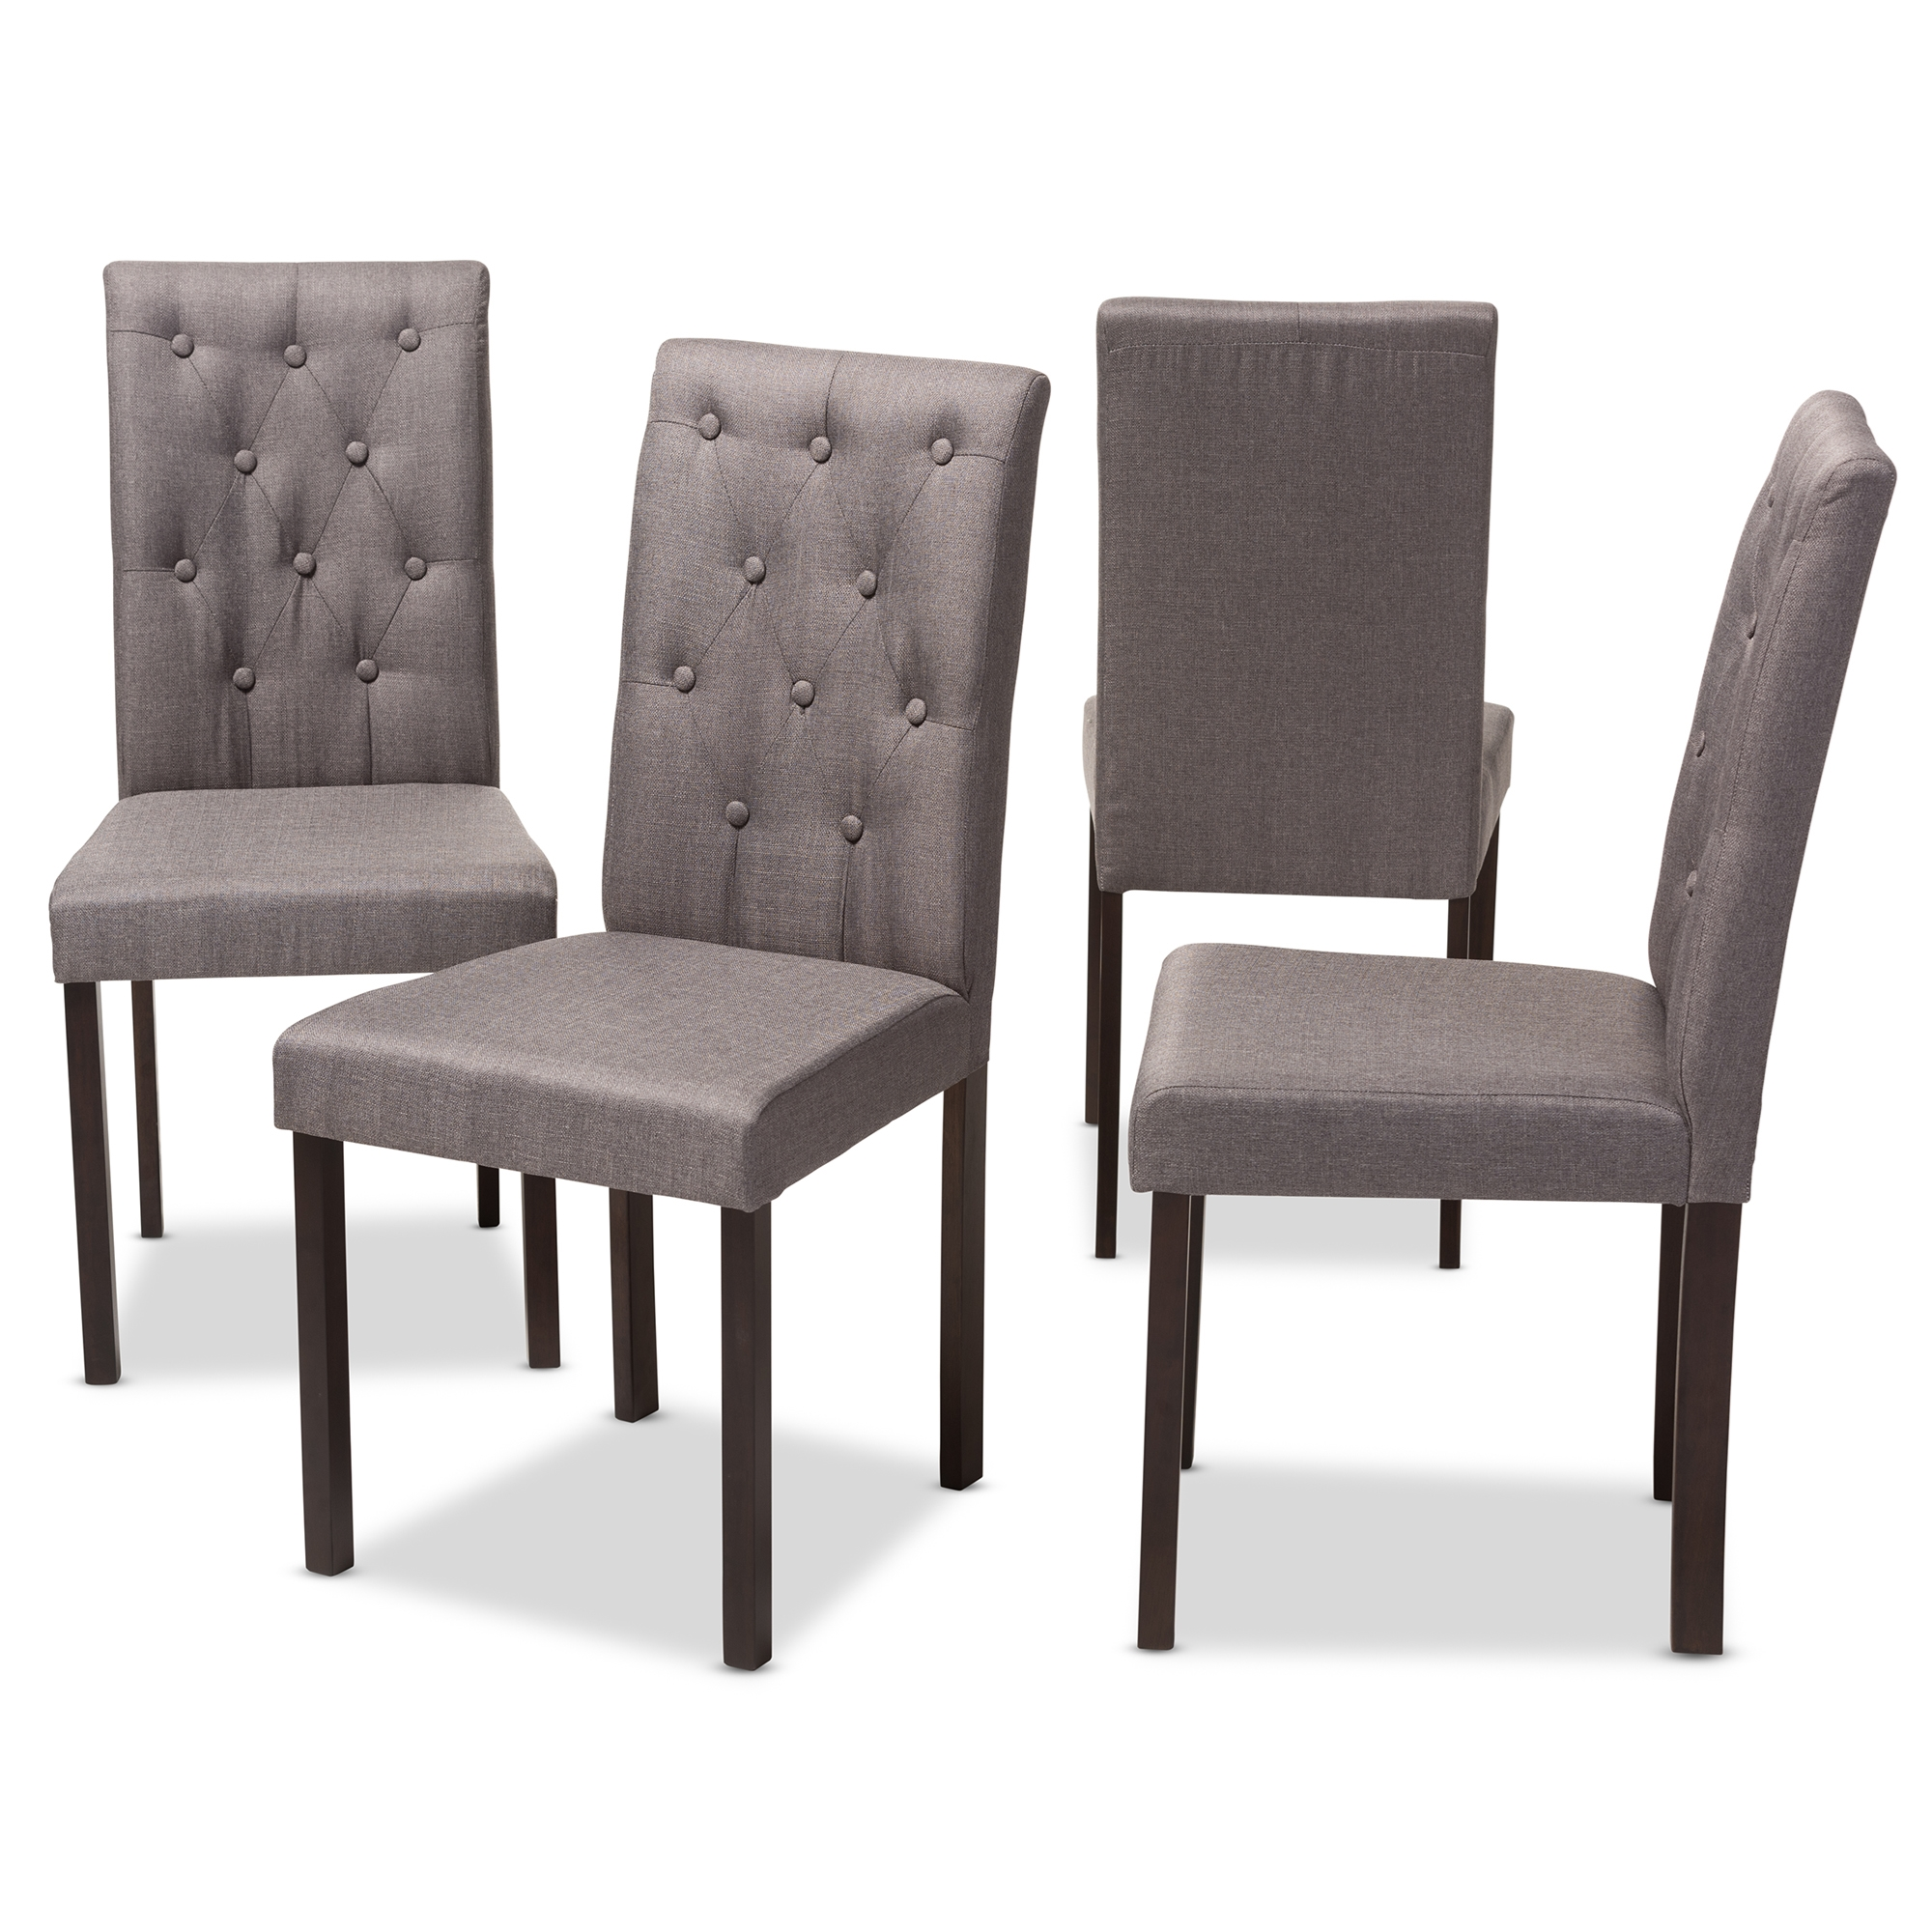 ... Baxton Studio Gardner Modern And Contemporary 5 Piece Dark Brown  Finished Grey Fabric Upholstered Dining ...